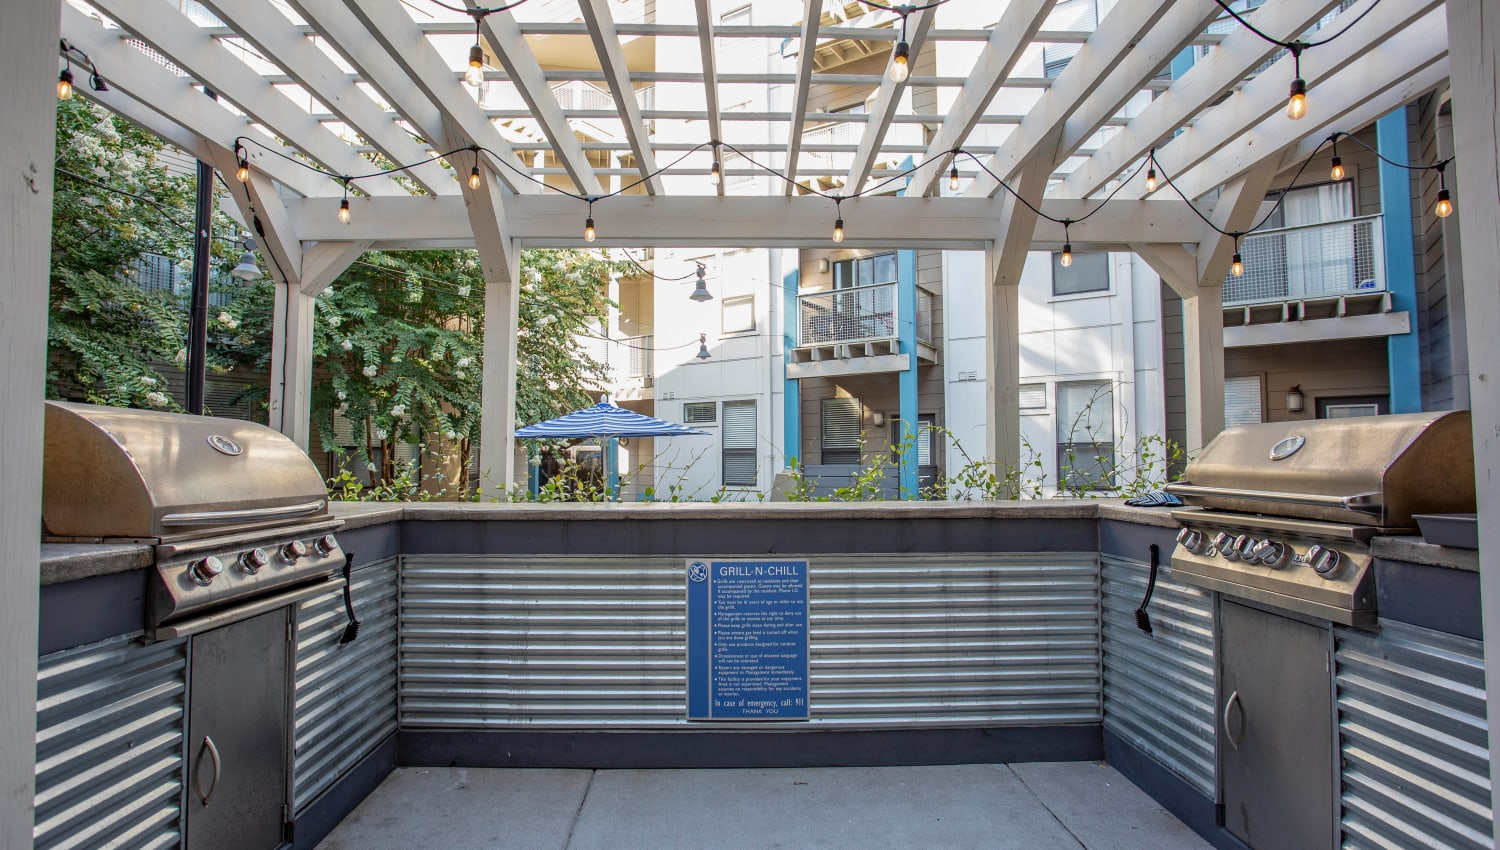 Pergola over the barbecue area with gas grills at Olympus Midtown in Nashville, Tennessee